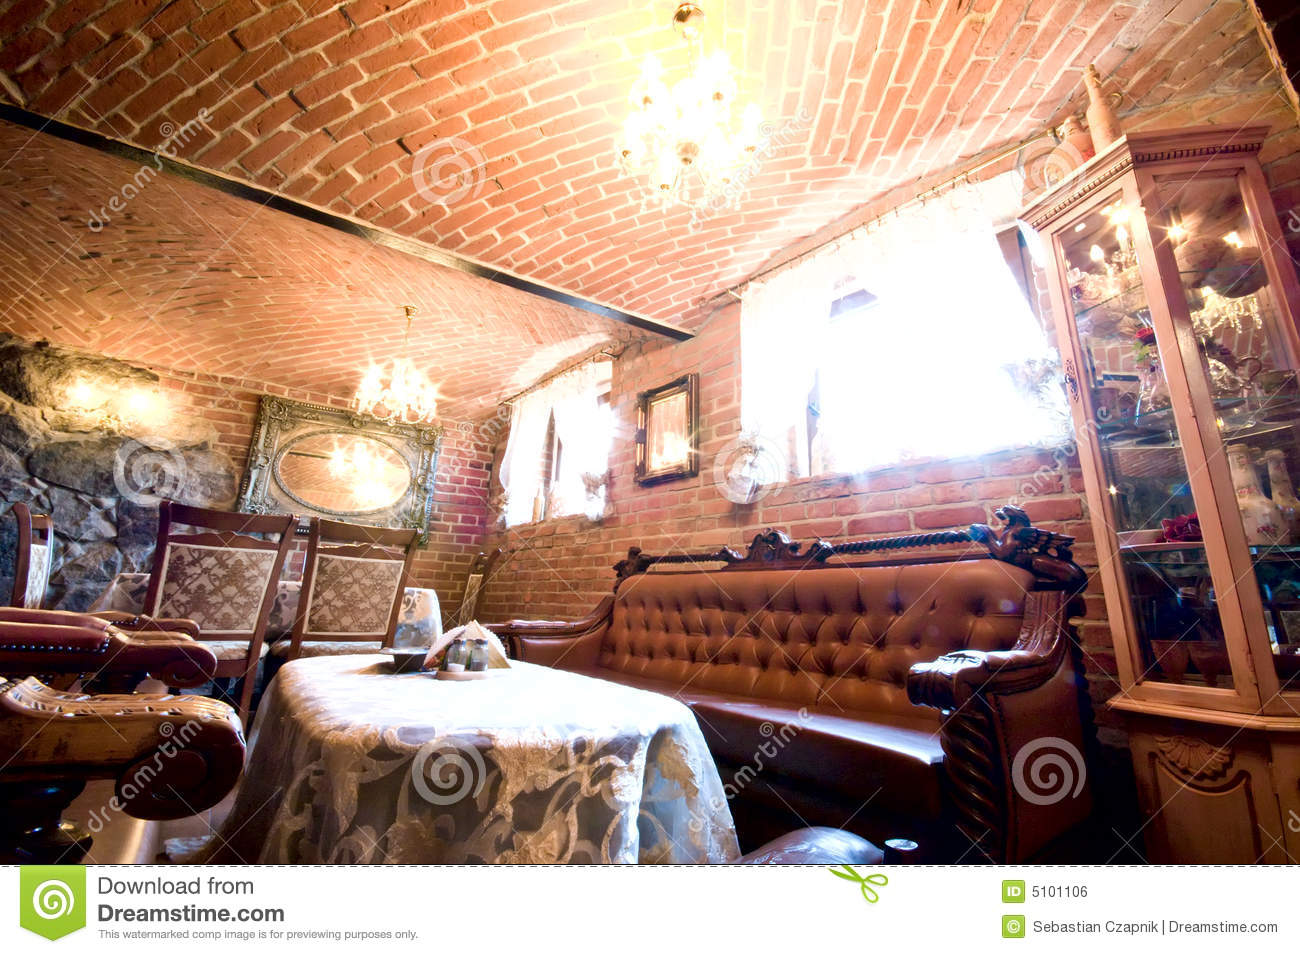 red brick restaurant royalty free stock image - image: 5101106